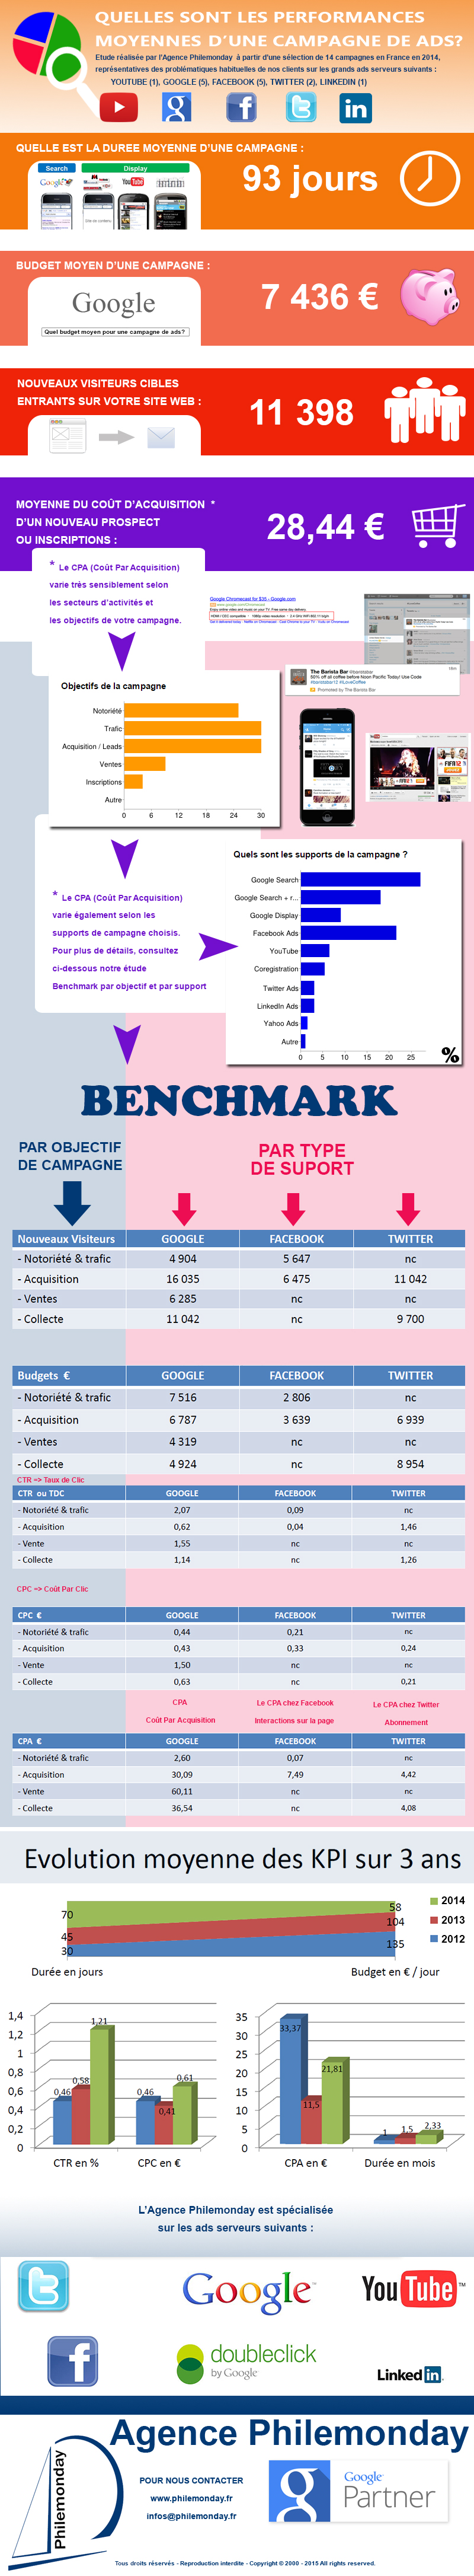 performances_moyennes_campagne_ads_infographie_philemonday_19032015